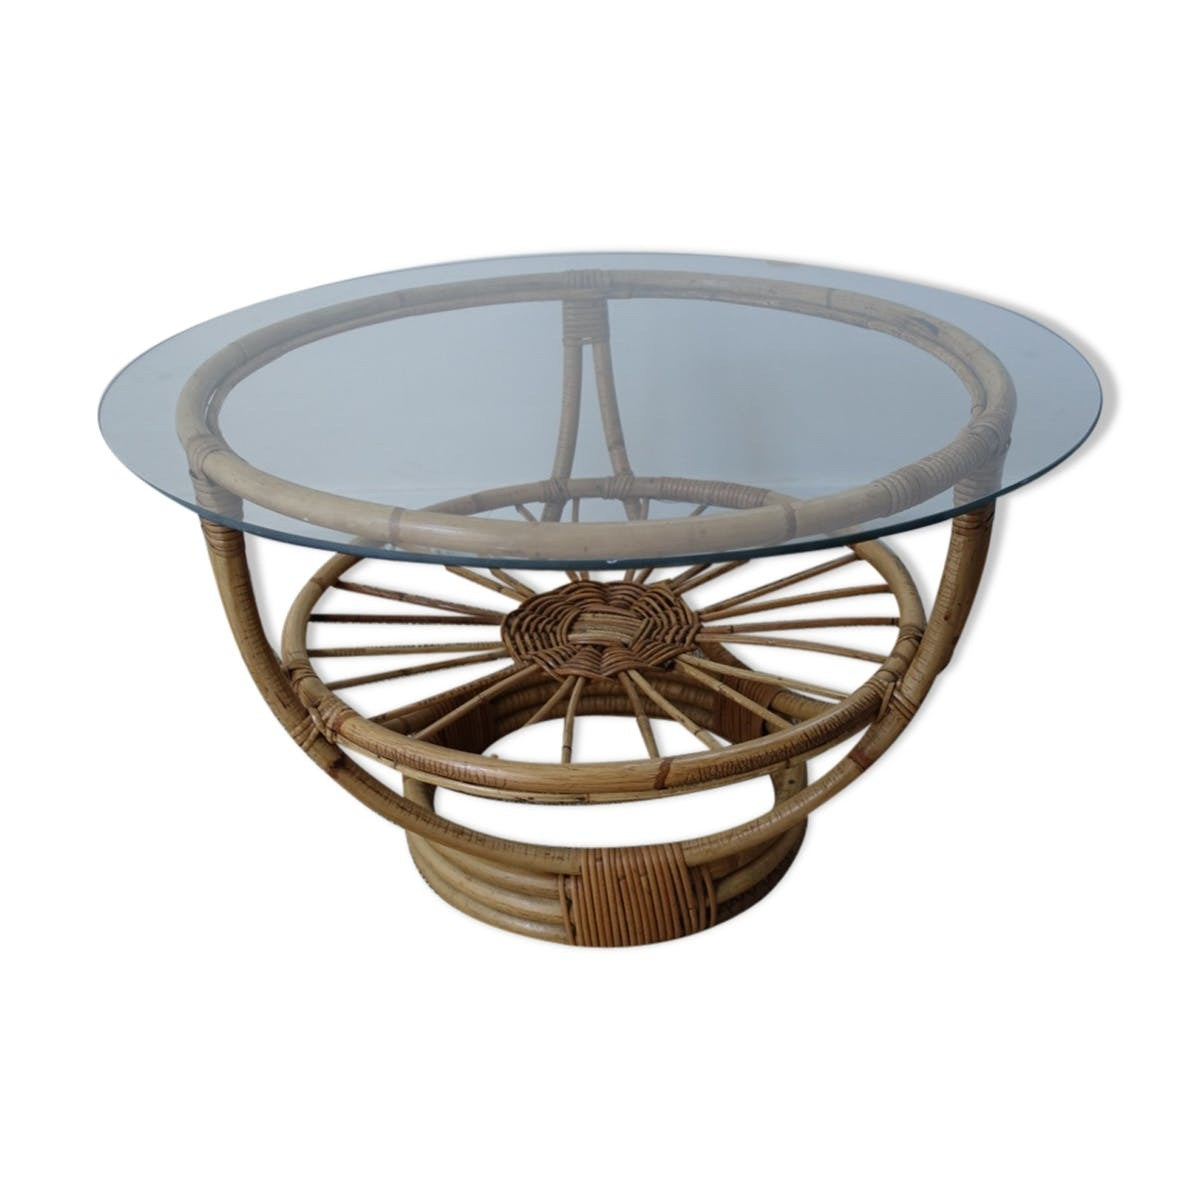 vintage rattan coffee table with glass top vinterior end tables cute dog kennel brown sofa carpet color john keal for saltman patio chairs west elm usa outdoor furniture saarinen